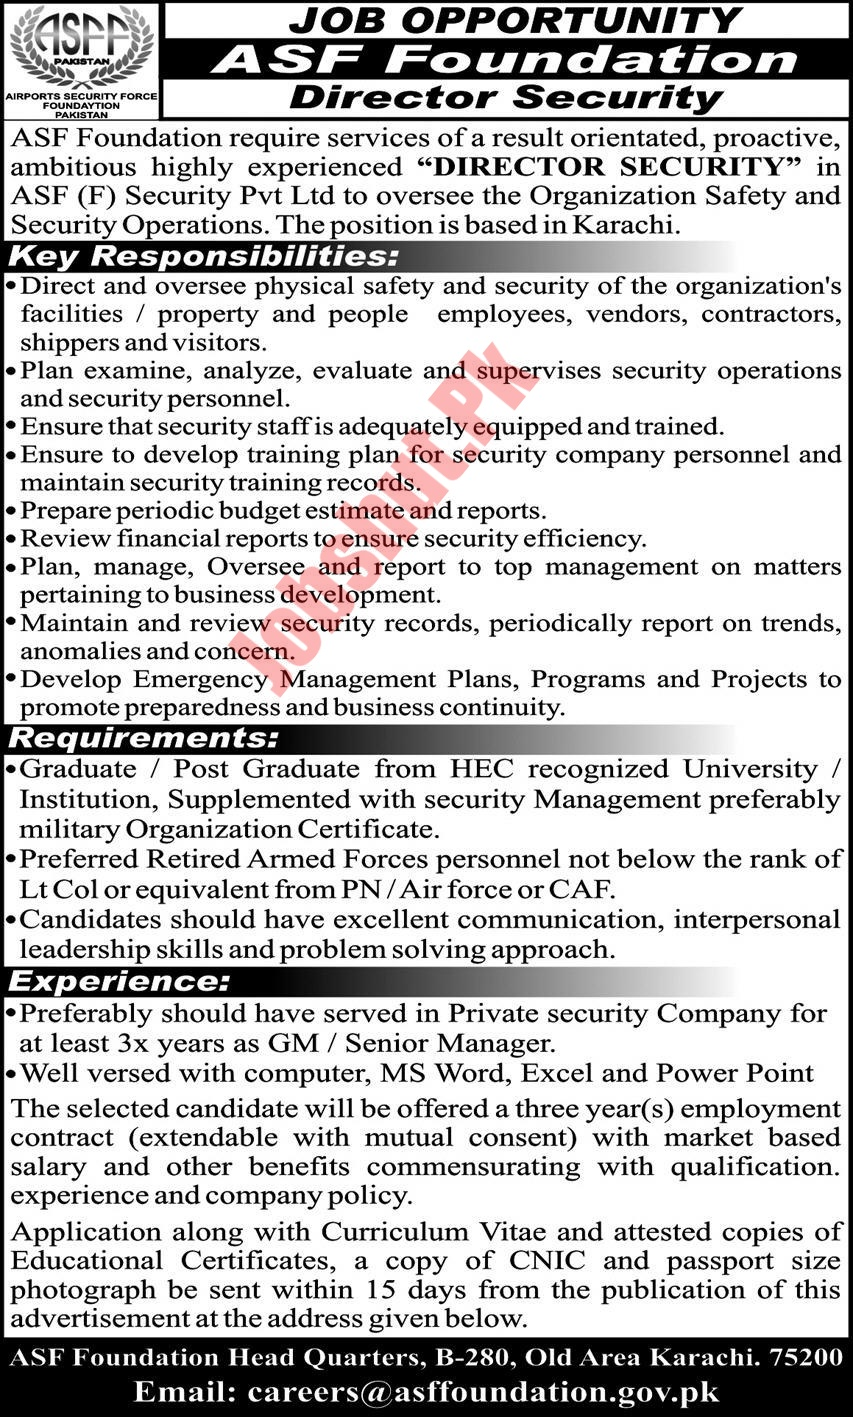 Airport Security Force jobs advertisement